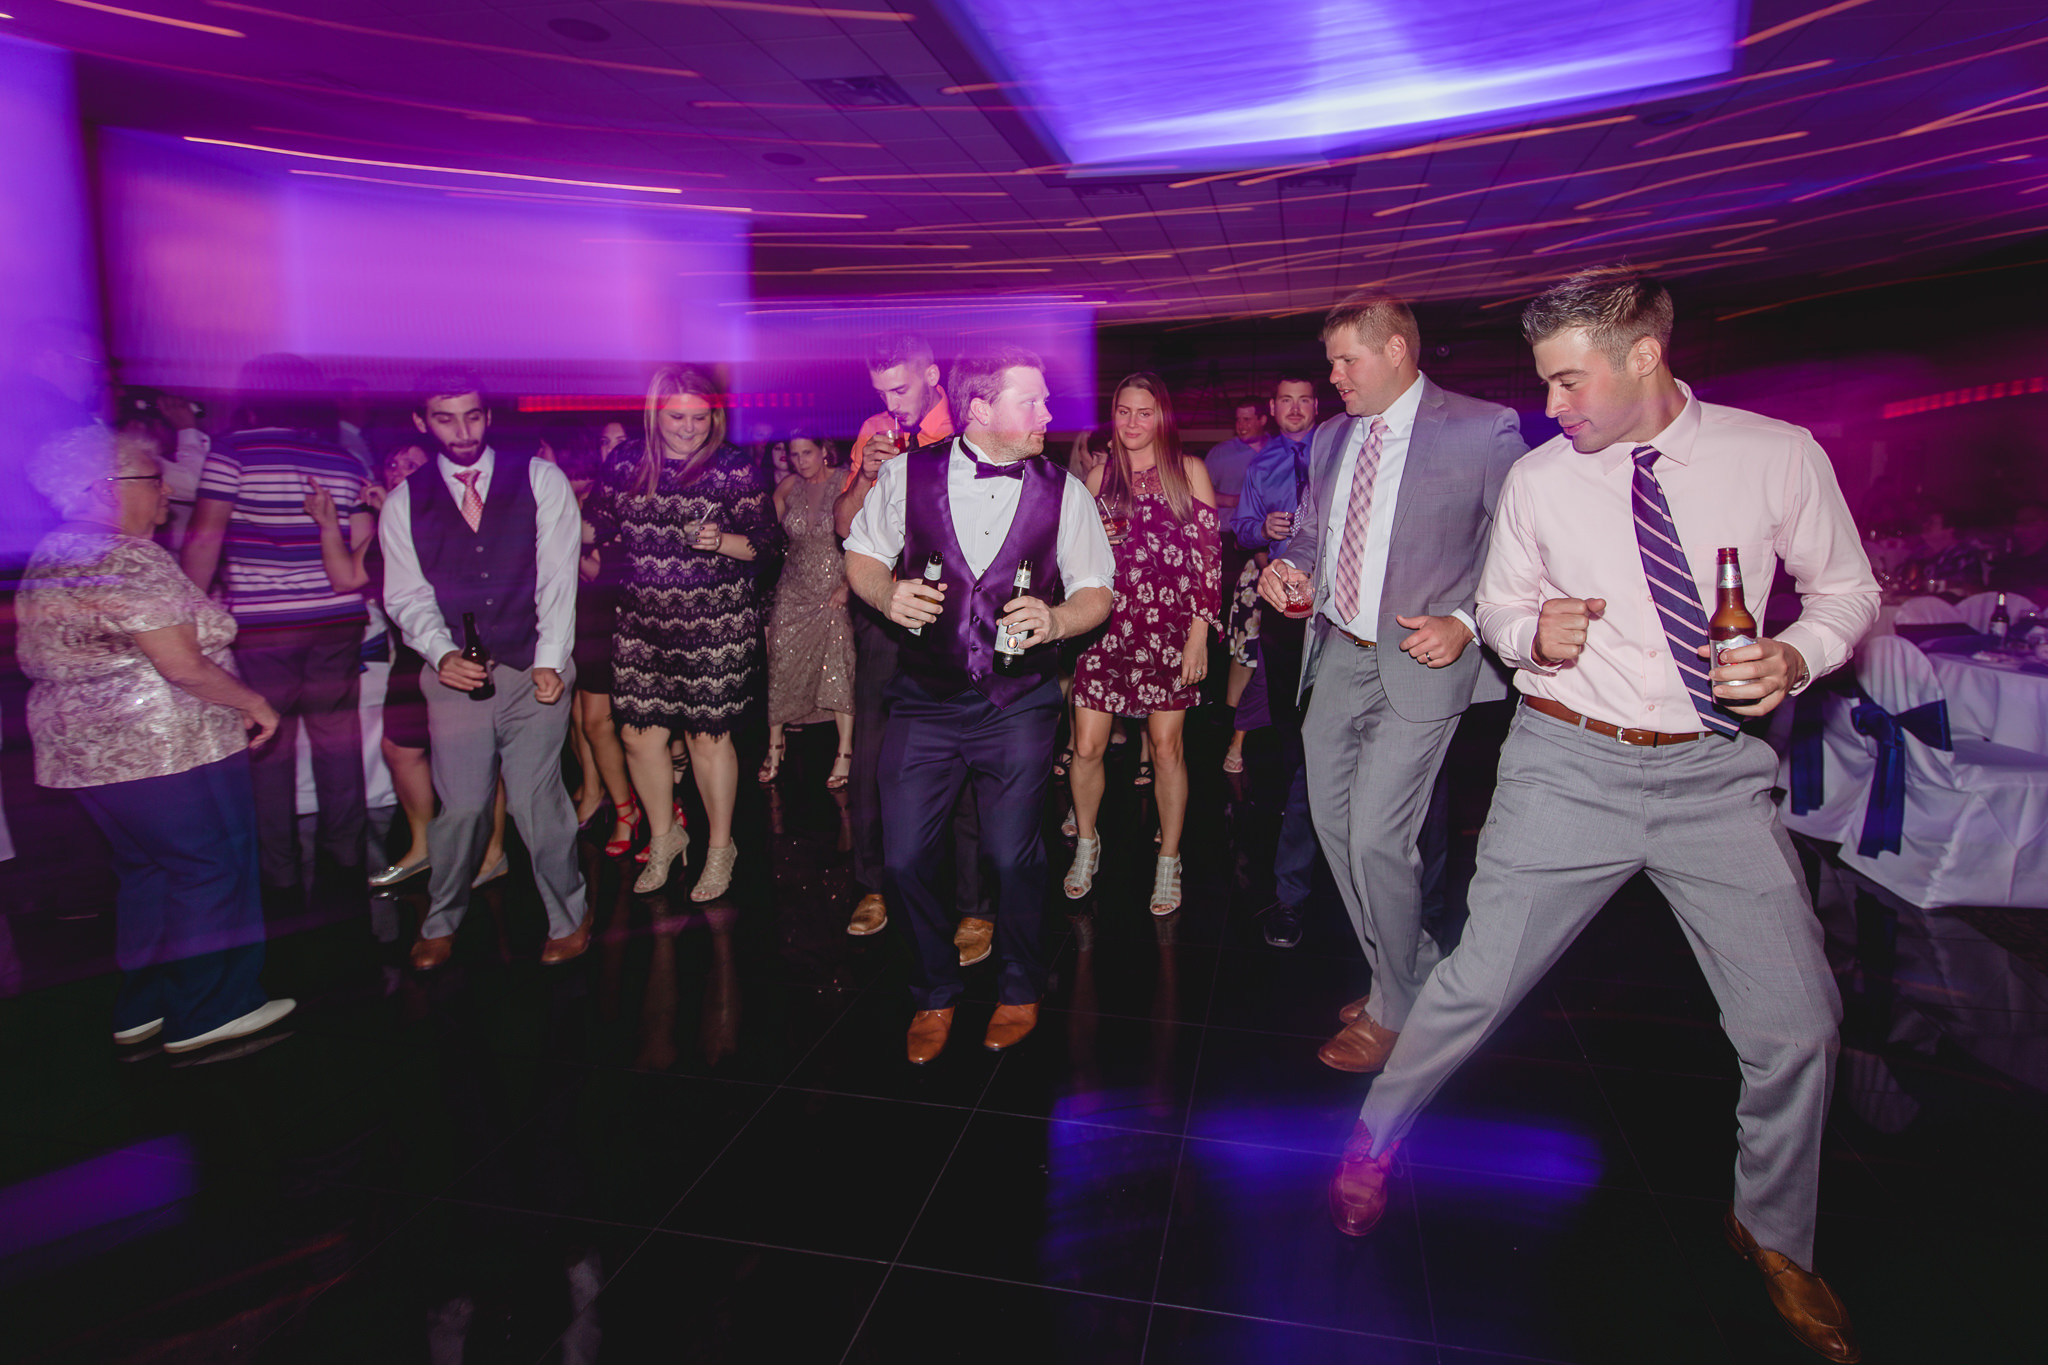 Guests dance to the Cha Cha Slide at a Fez wedding reception